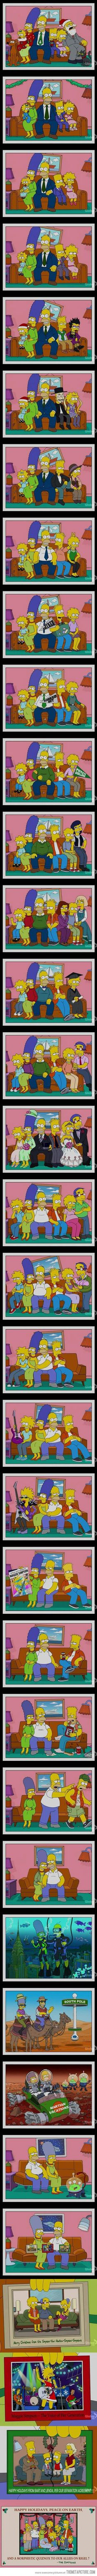 The Simpsons' Christmas Card Photos Through The Years